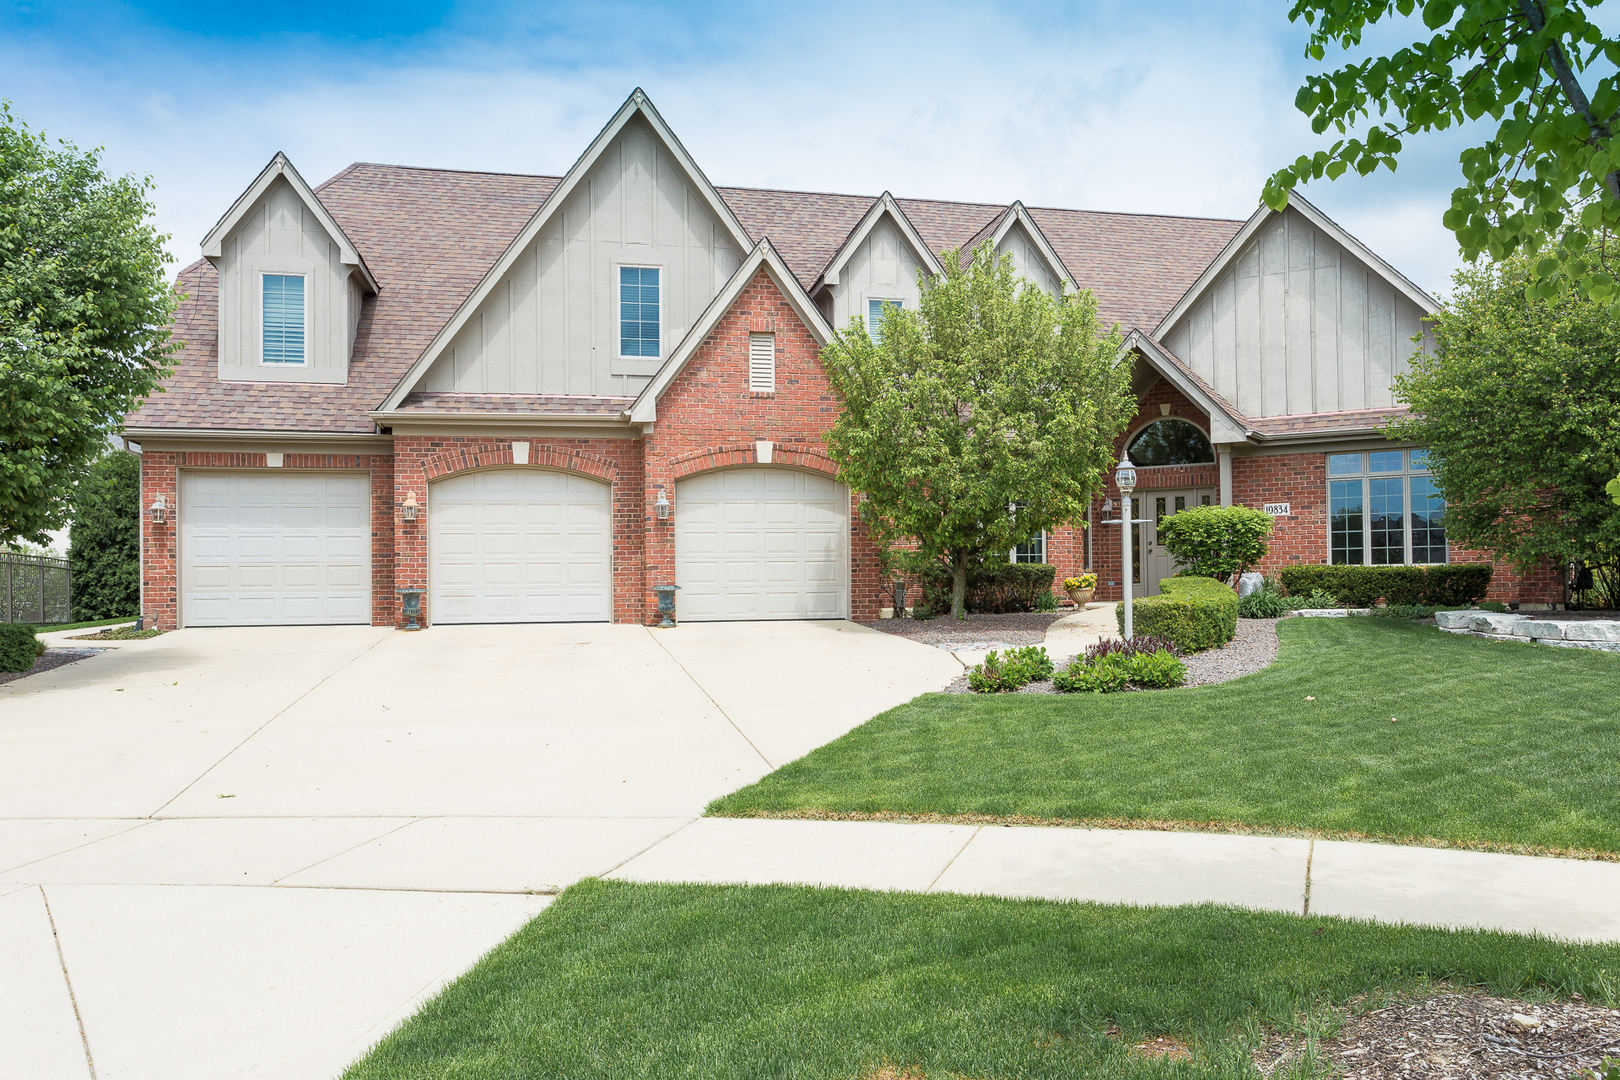 10834 Moose Lane Orland Park, IL 60467